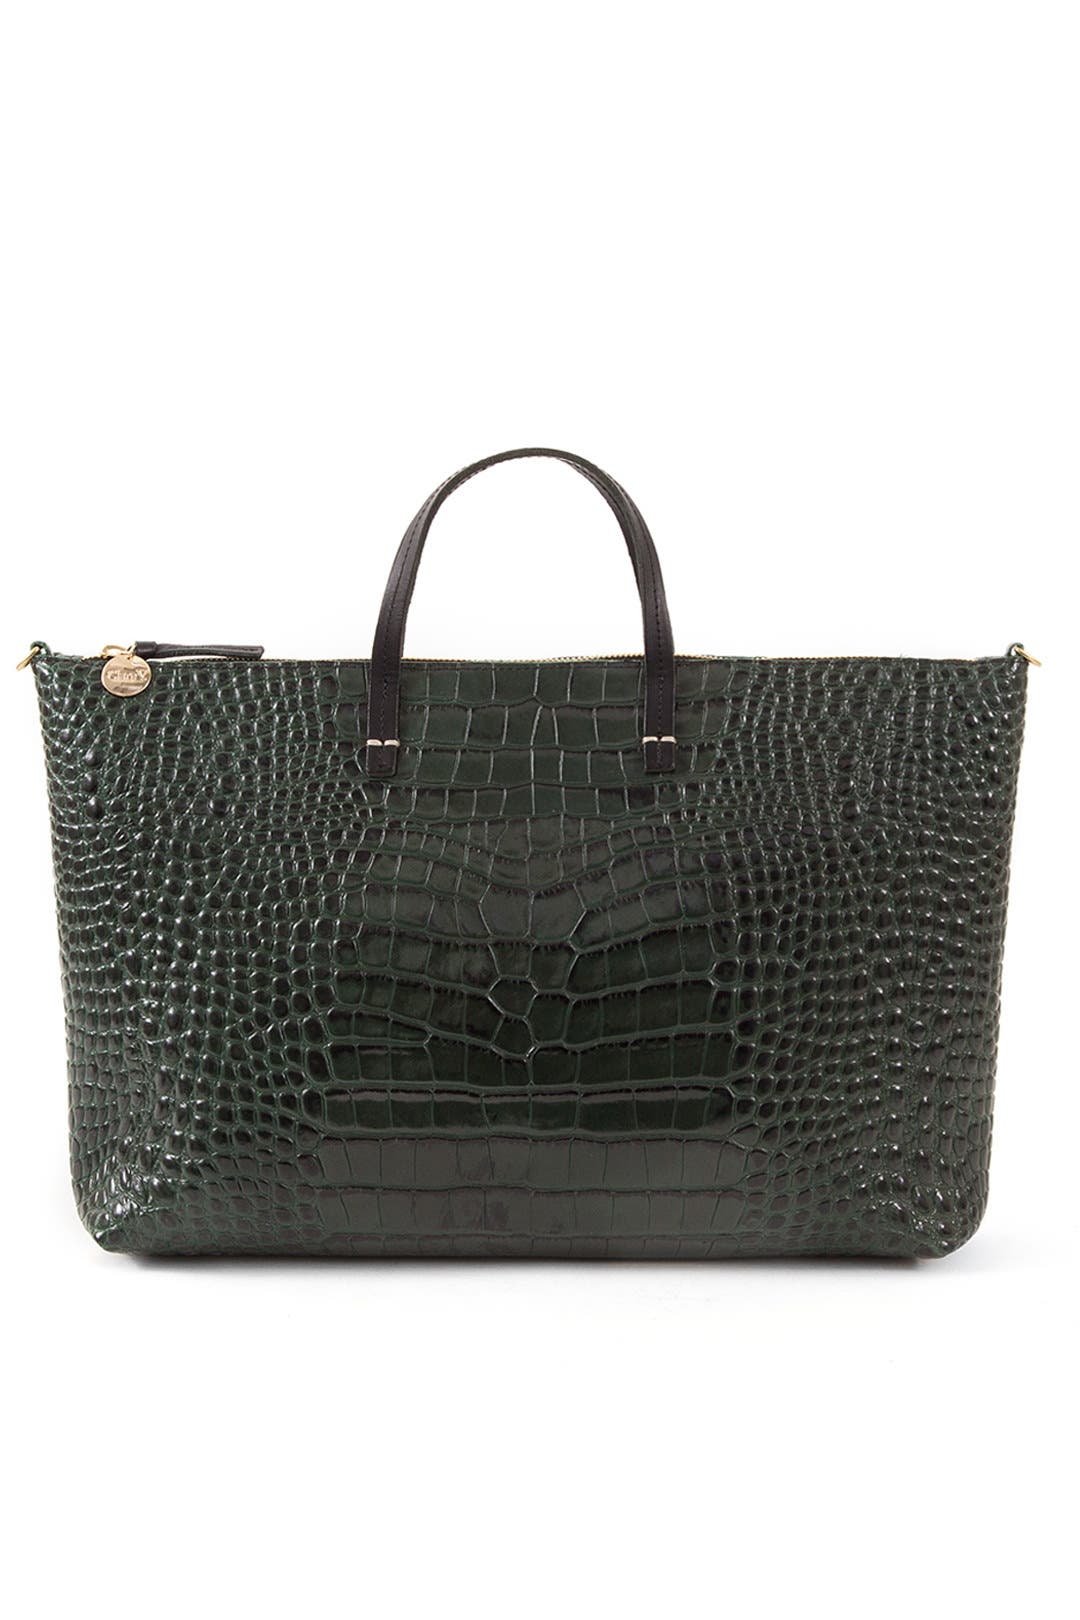 6a12cd9ff Green Attache Tote by Clare V. for $55 | Rent the Runway